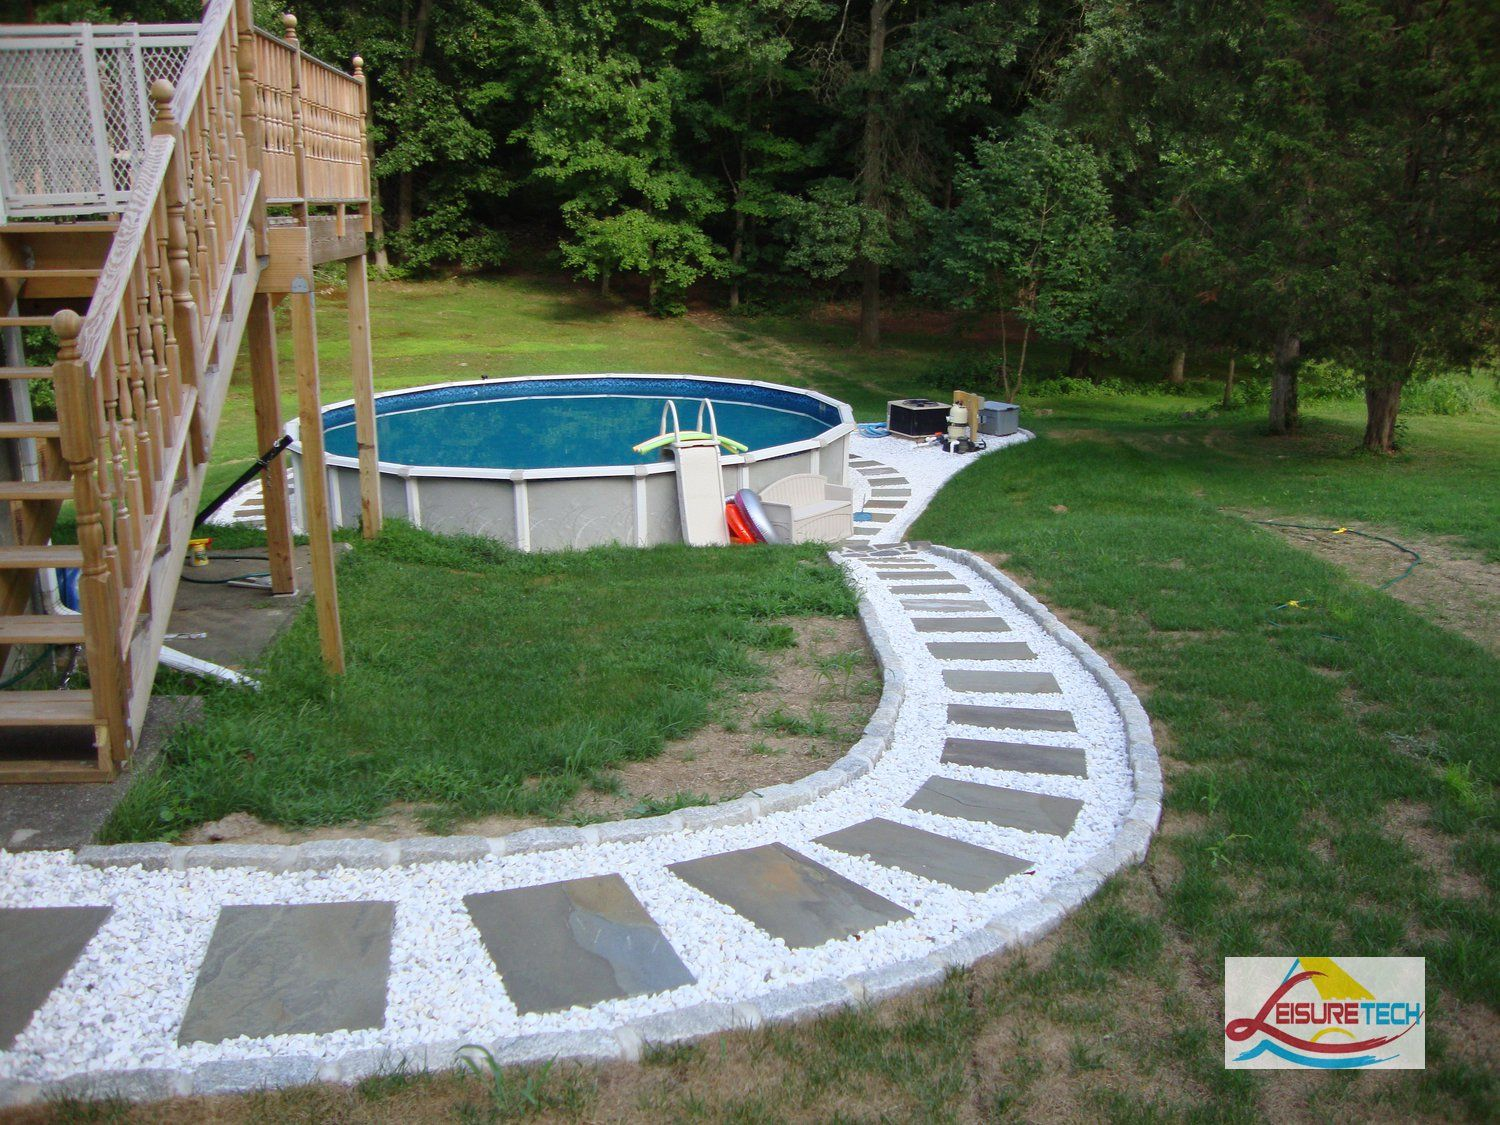 Landscape plans: Backyard landscaping with above ground pool